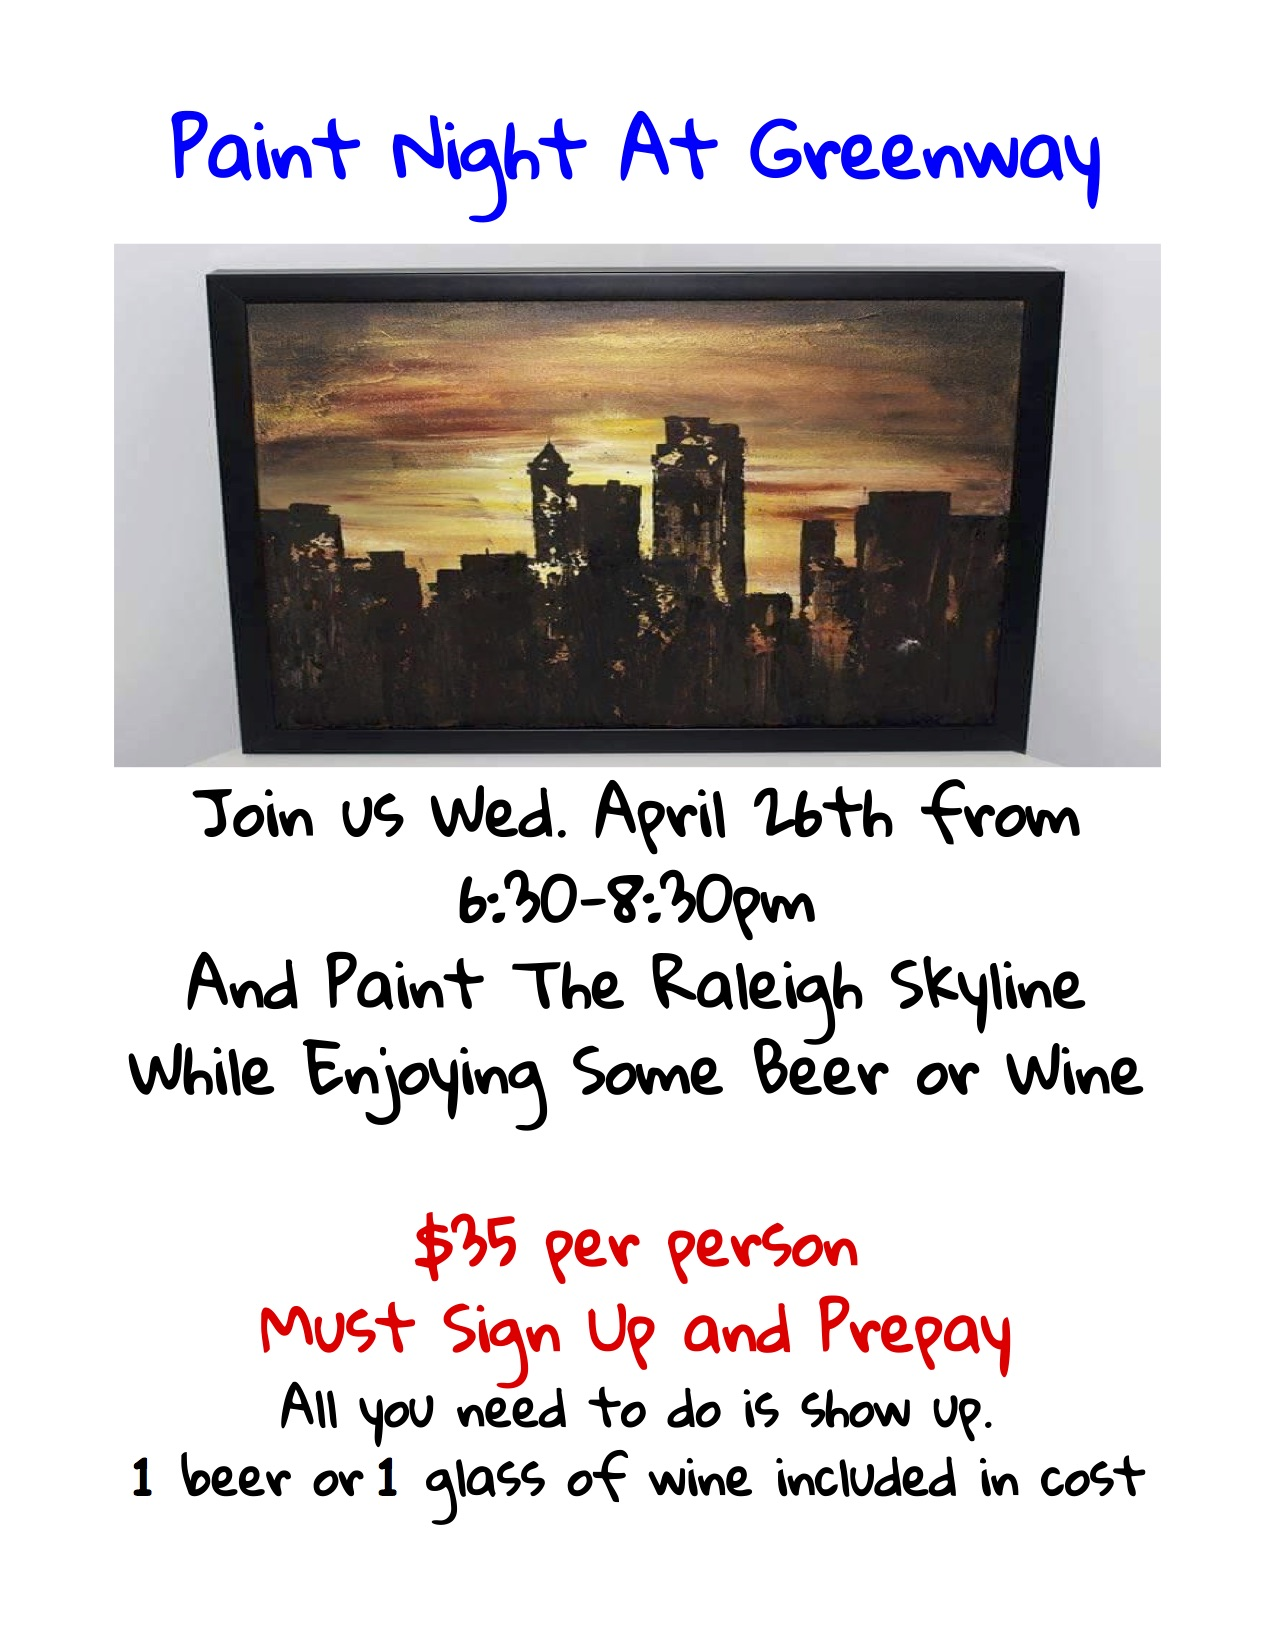 Greenway beer and wine paint night at greenway wed for Paint and wine raleigh